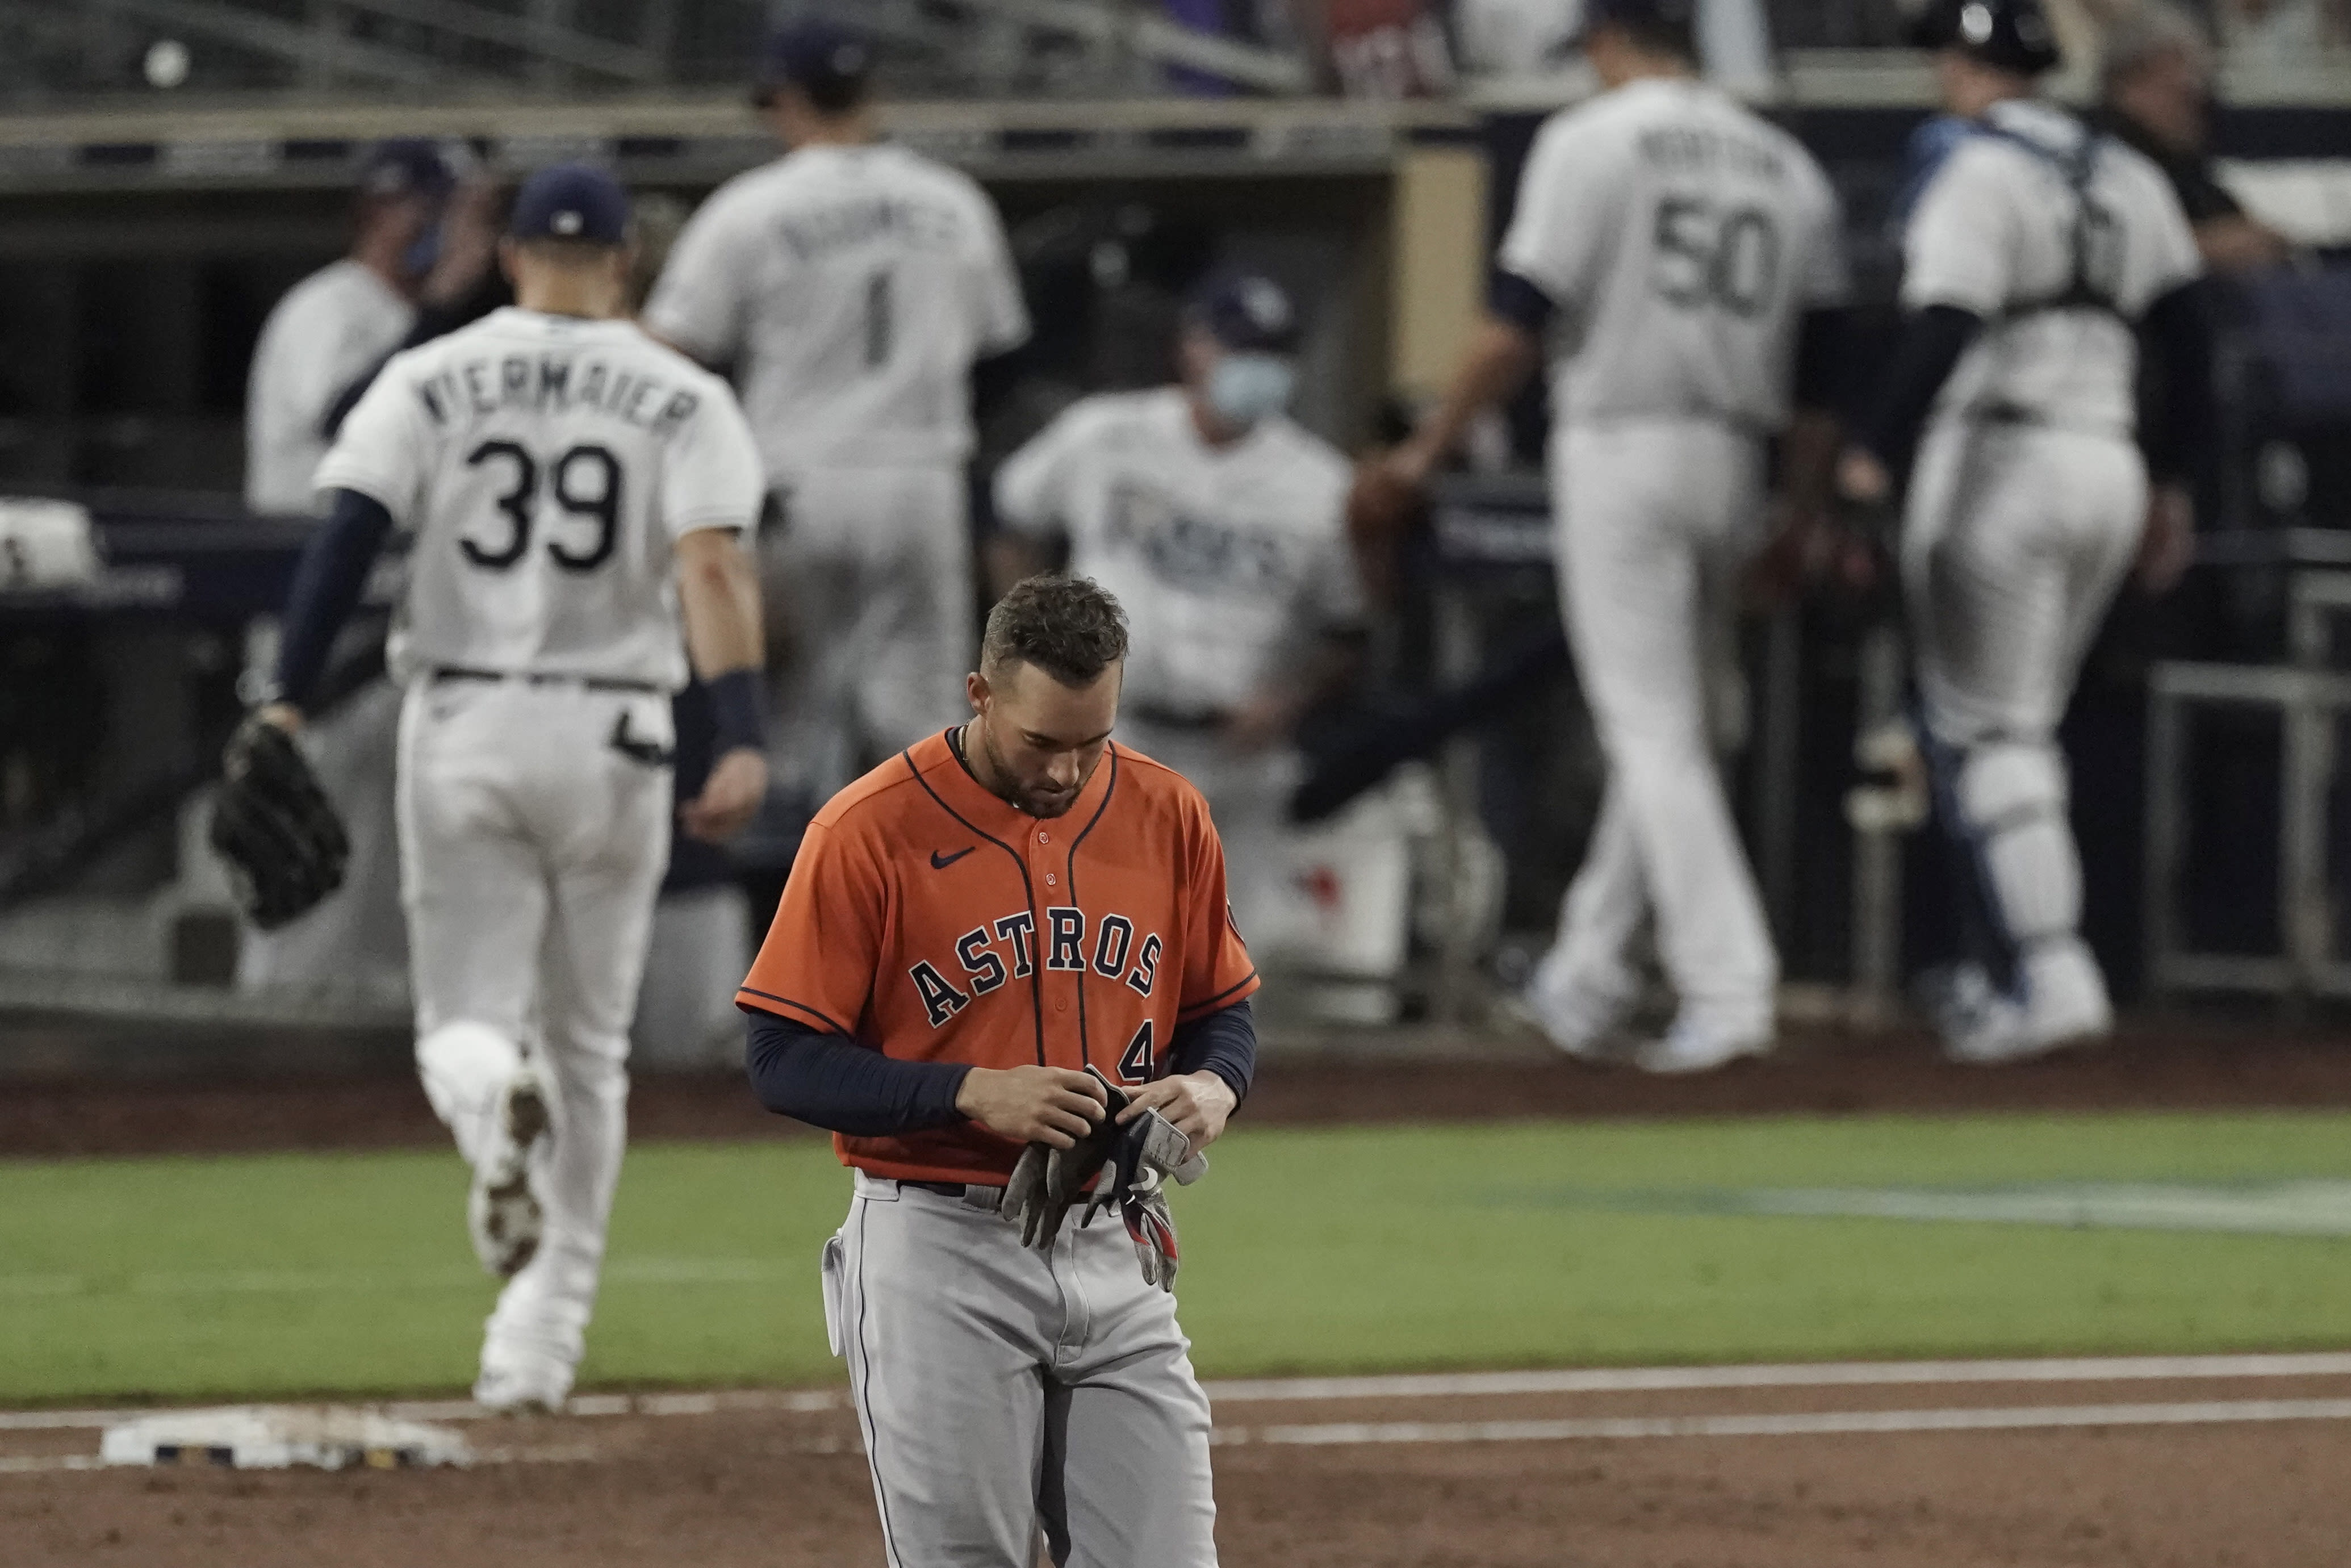 Houston Astros George Springer walks back to the dugout after grounding out against the Tampa Bay Rays during the third inning in Game 7 of a baseball American League Championship Series, Saturday, Oct. 17, 2020, in San Diego. (AP Photo/Jae C. Hong)